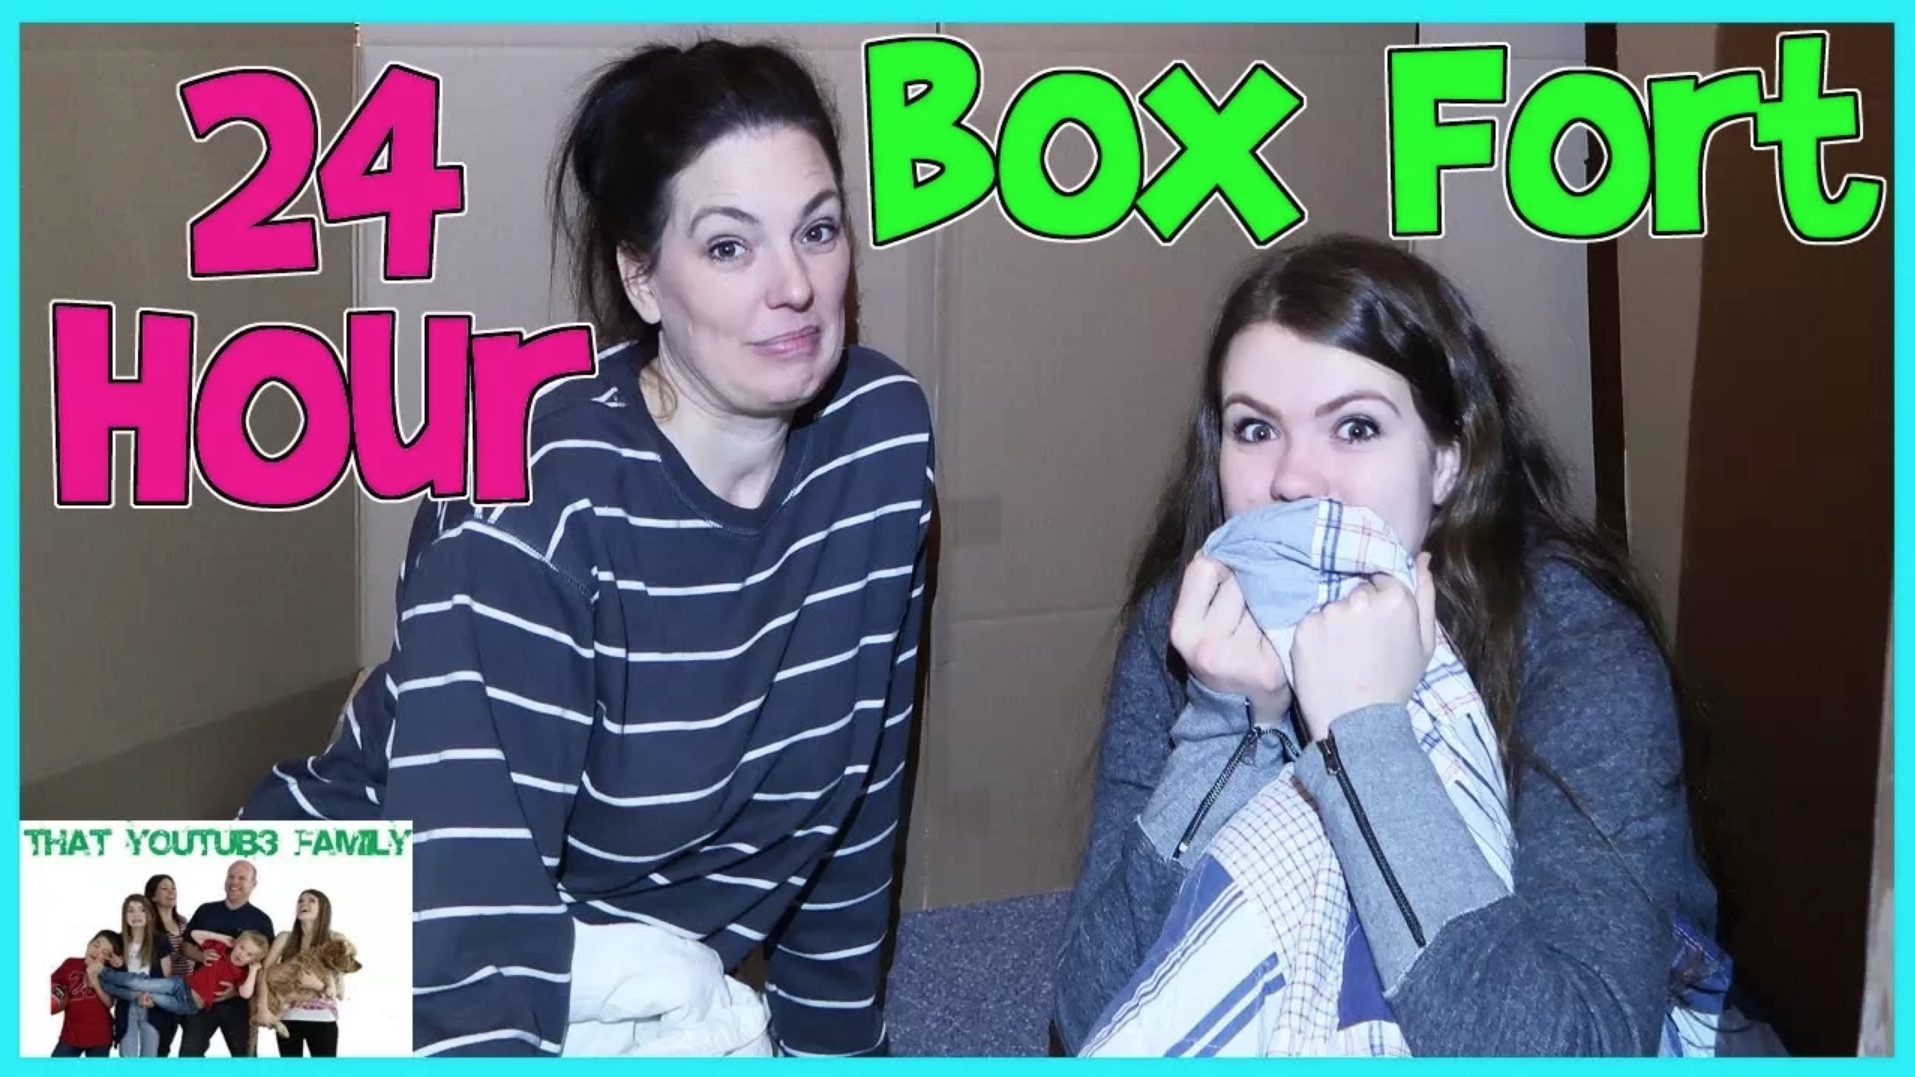 24 hour box fort – that youtub3 family